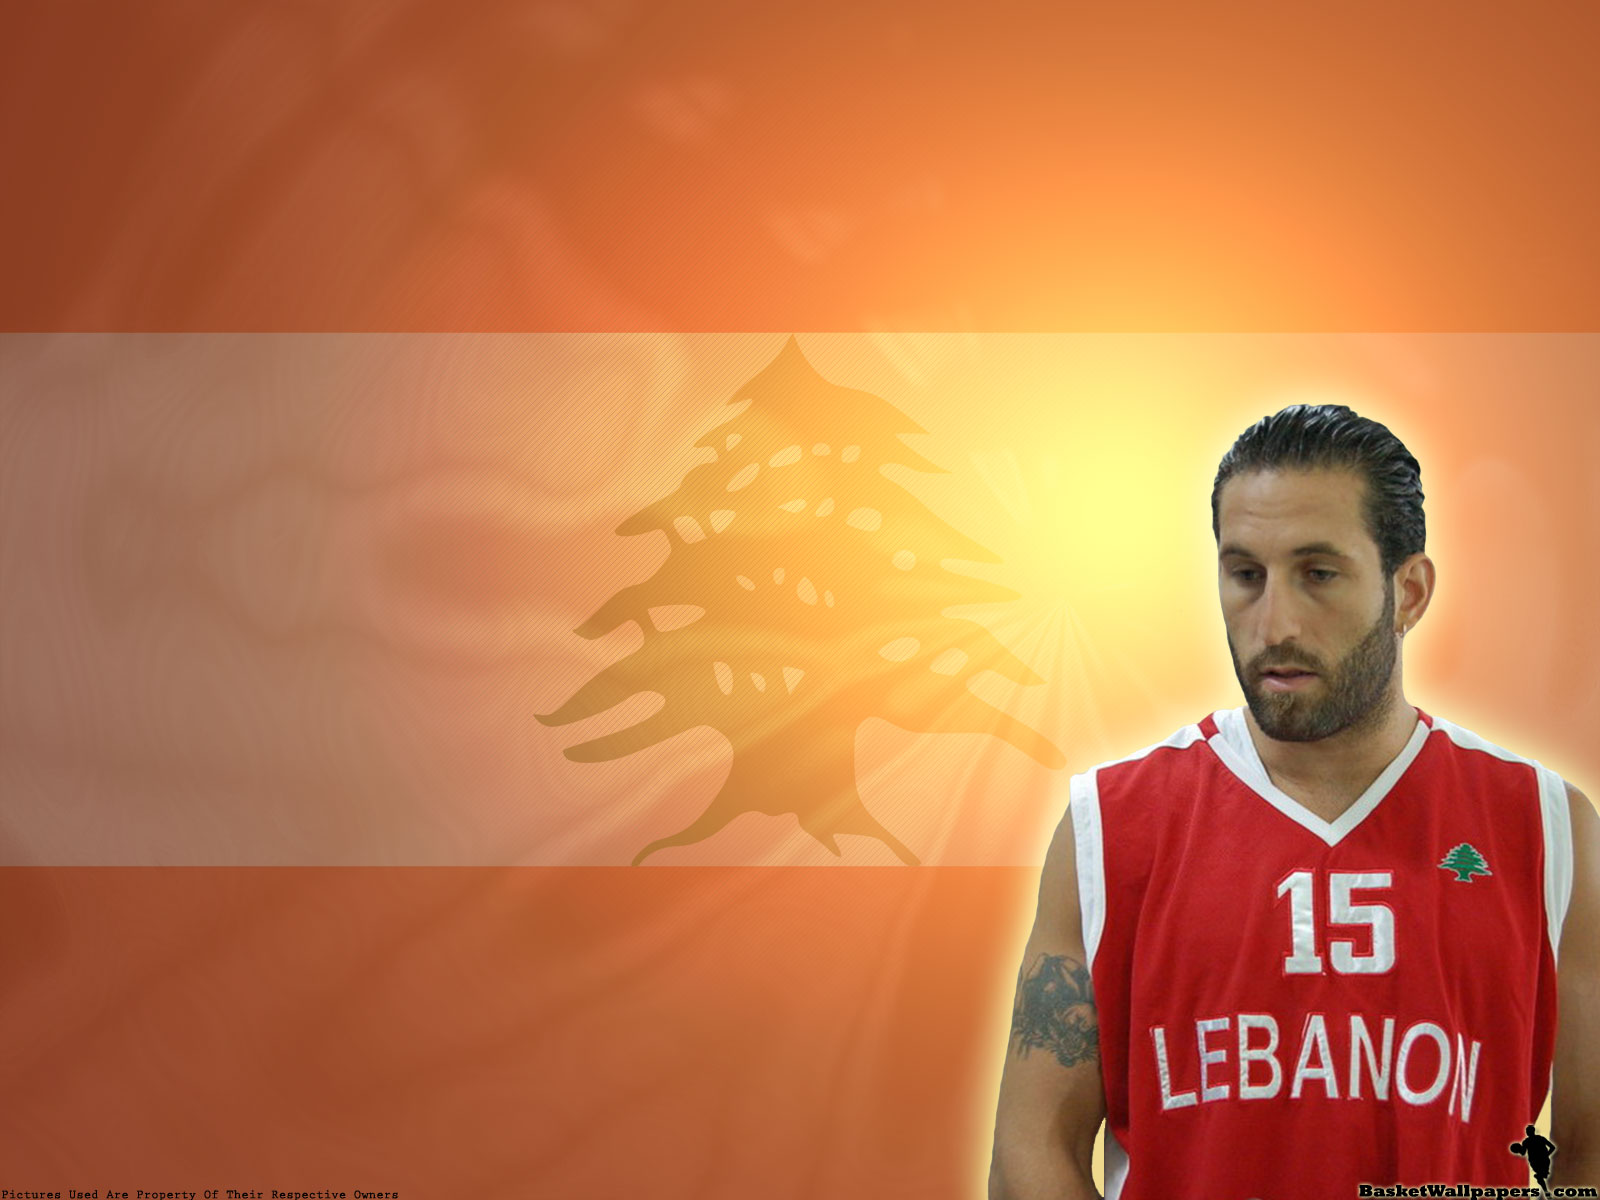 I haven't found any good wallpapers of him so i made one with him in Lebanon